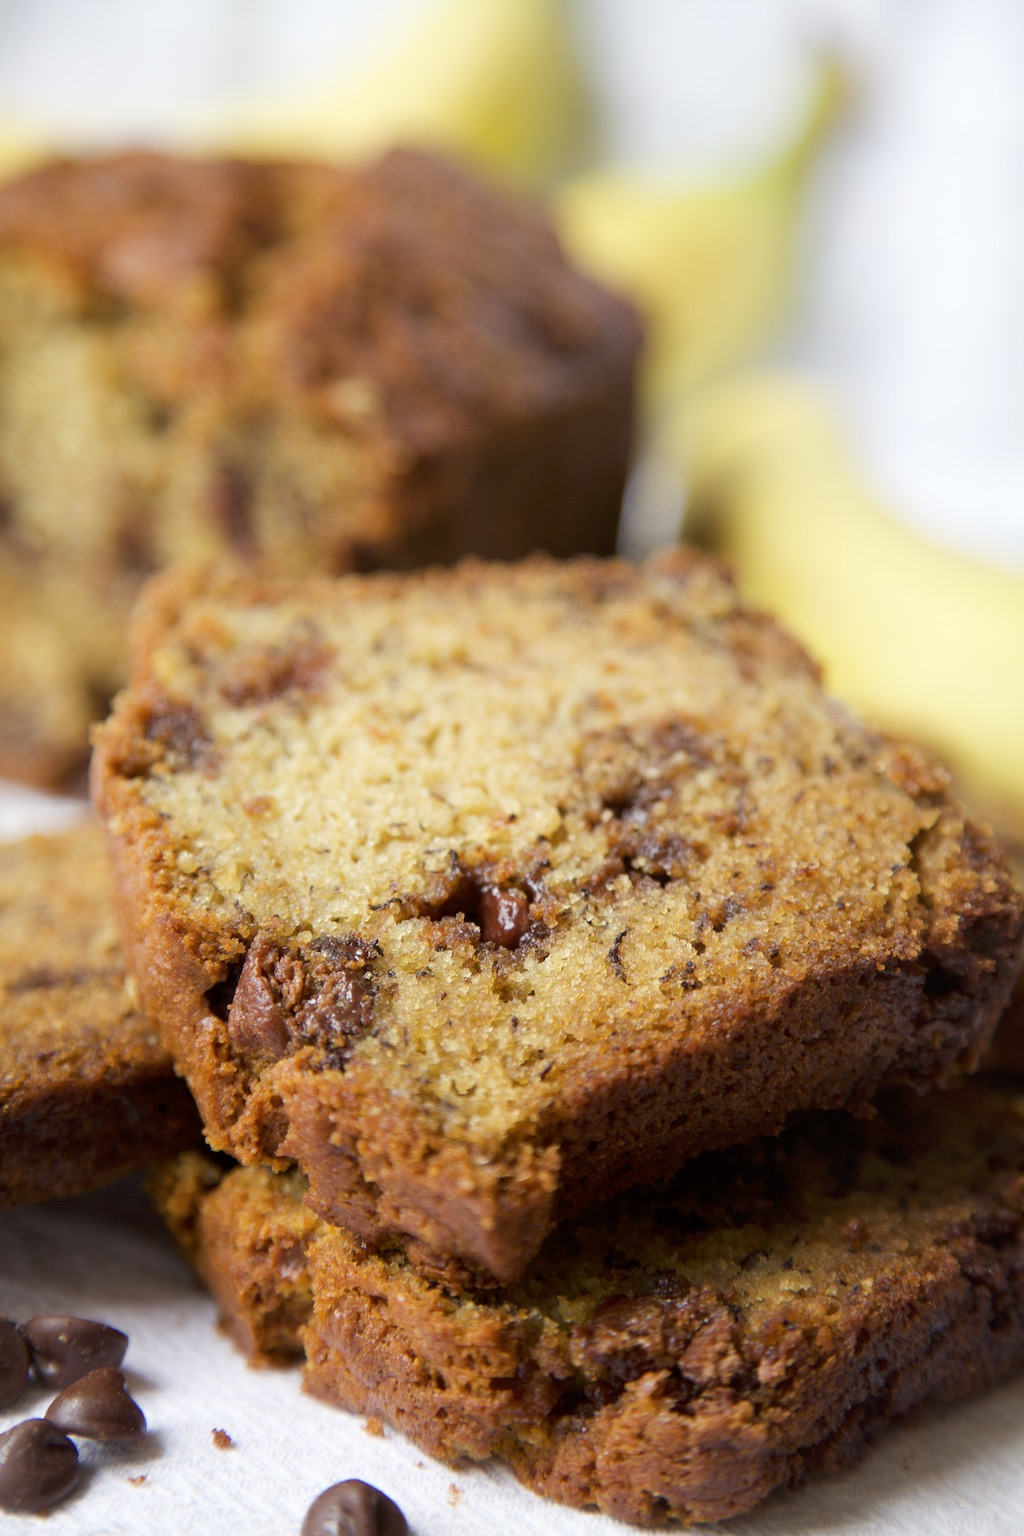 Chocolate Chip Banana Bread - MSST